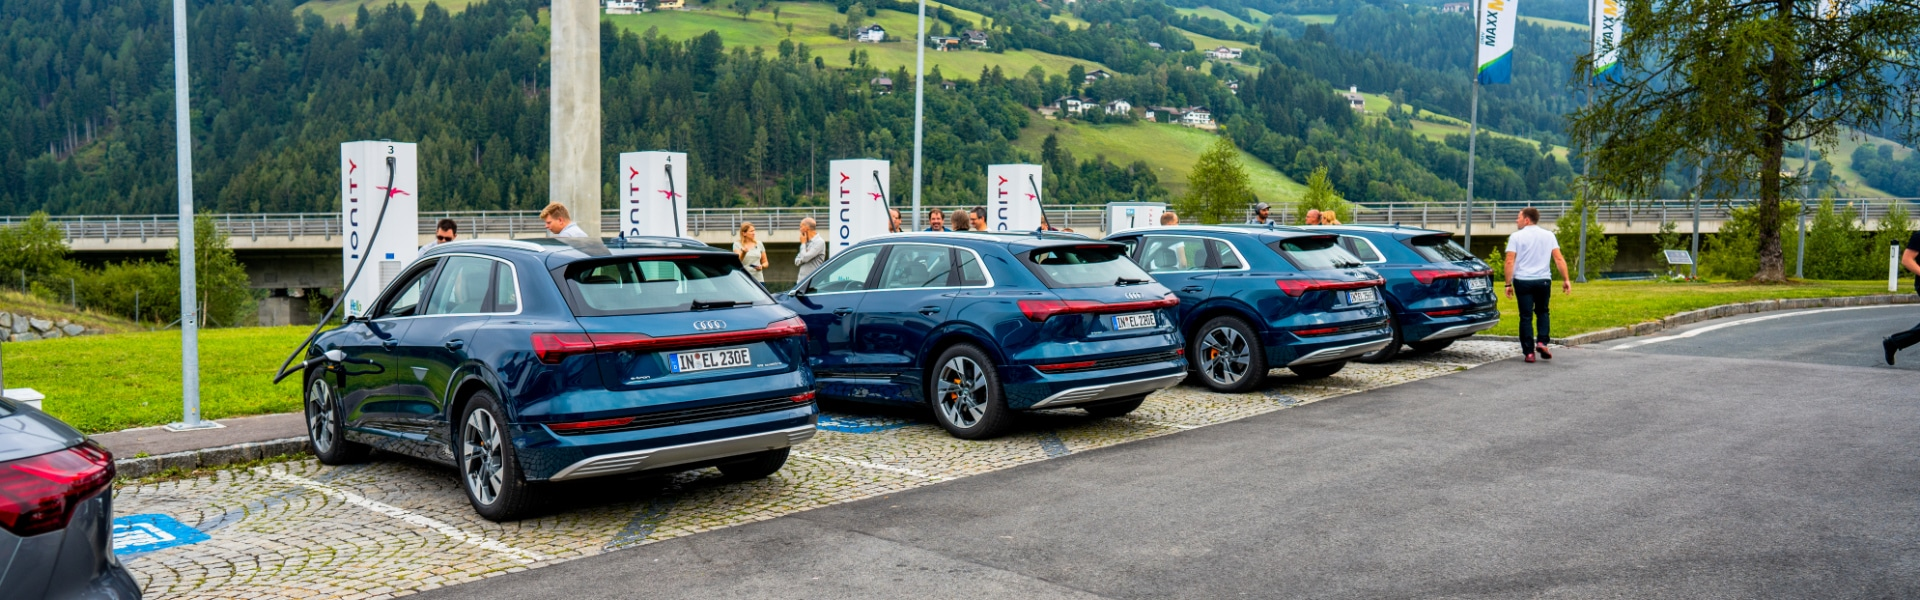 The e-tron extreme tour through Europe in numbers: